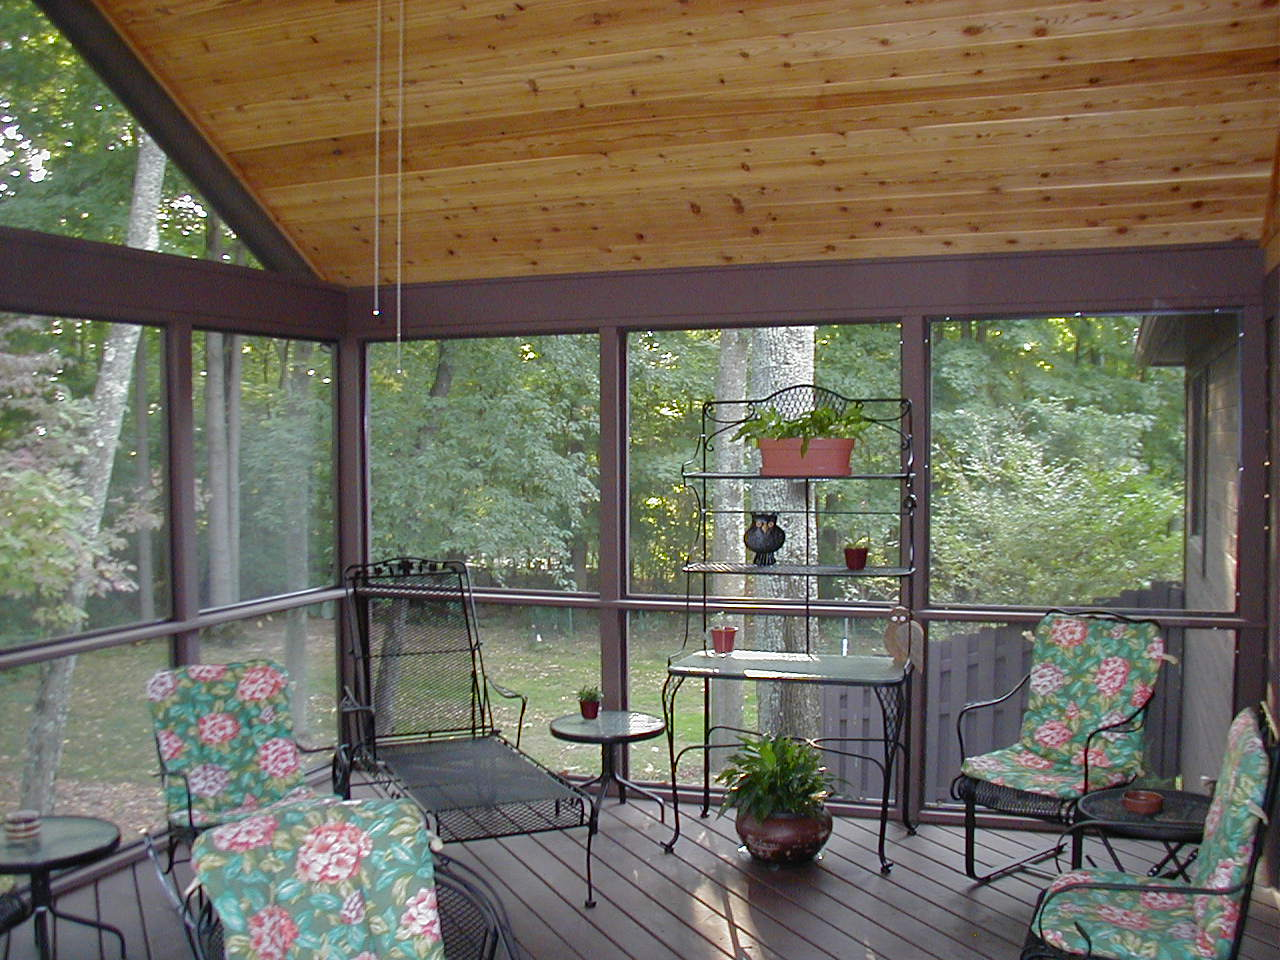 Captivating Screened Porch Divider Rail With Floor Of Diagonal Decking Boards